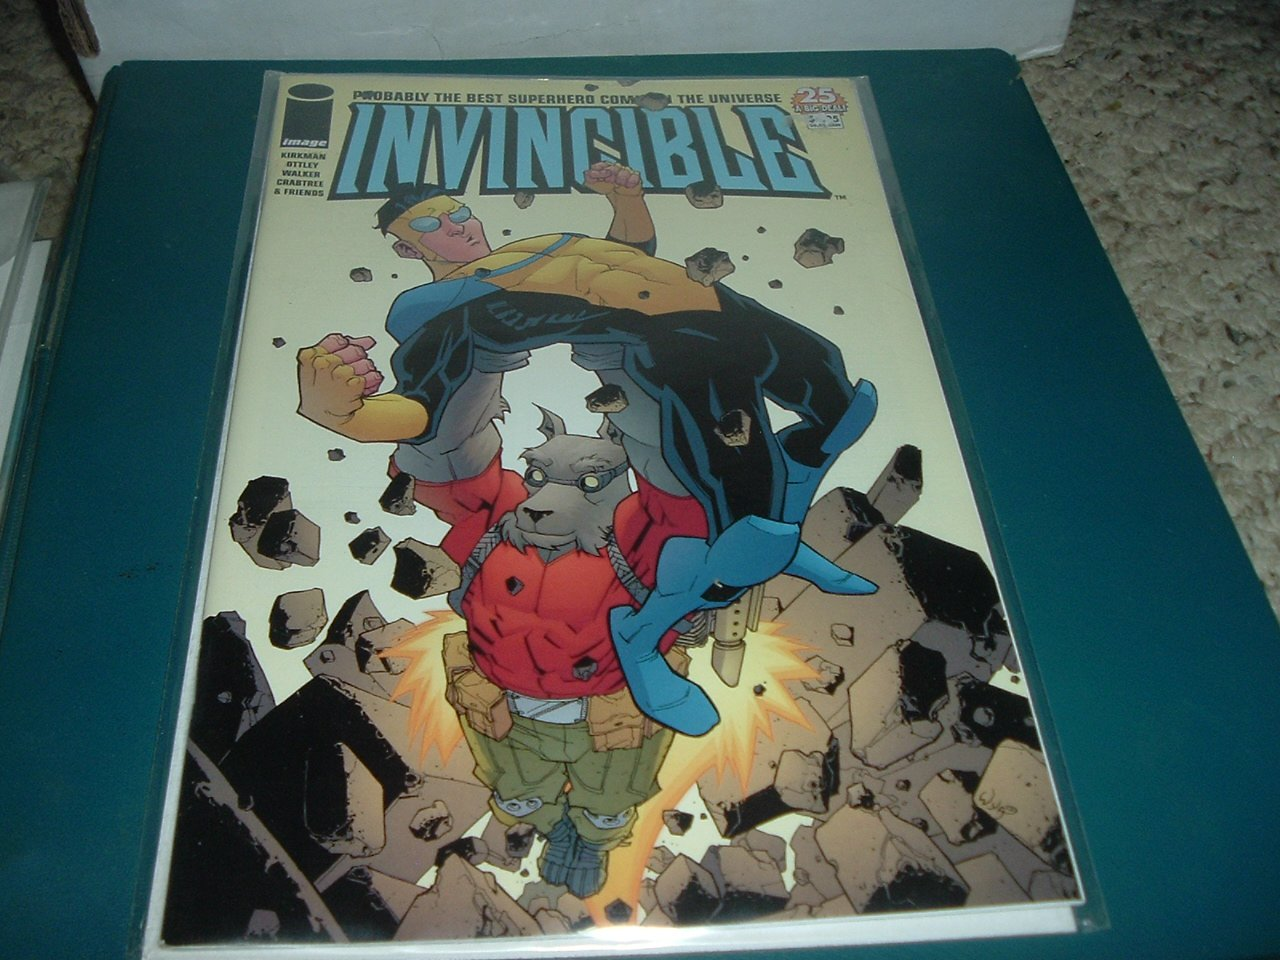 Invincible #25 NEAR MINT (Image Comics 2005) Kirkman, Save $$$ with Shipping Special, comic for sale